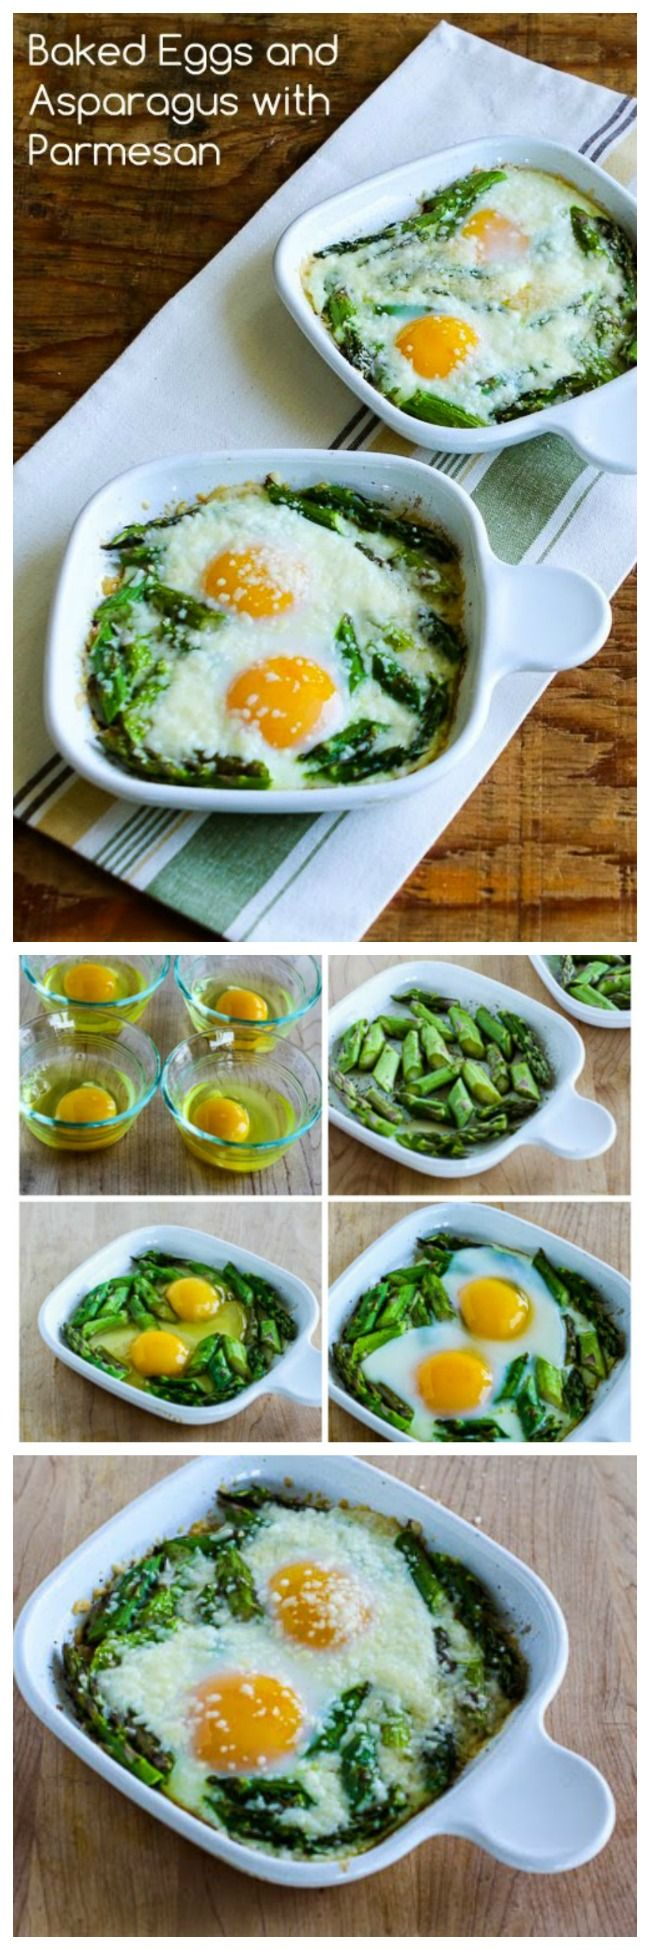 Baked Eggs and Asparagus with Parmesan is a real treat for breakfast